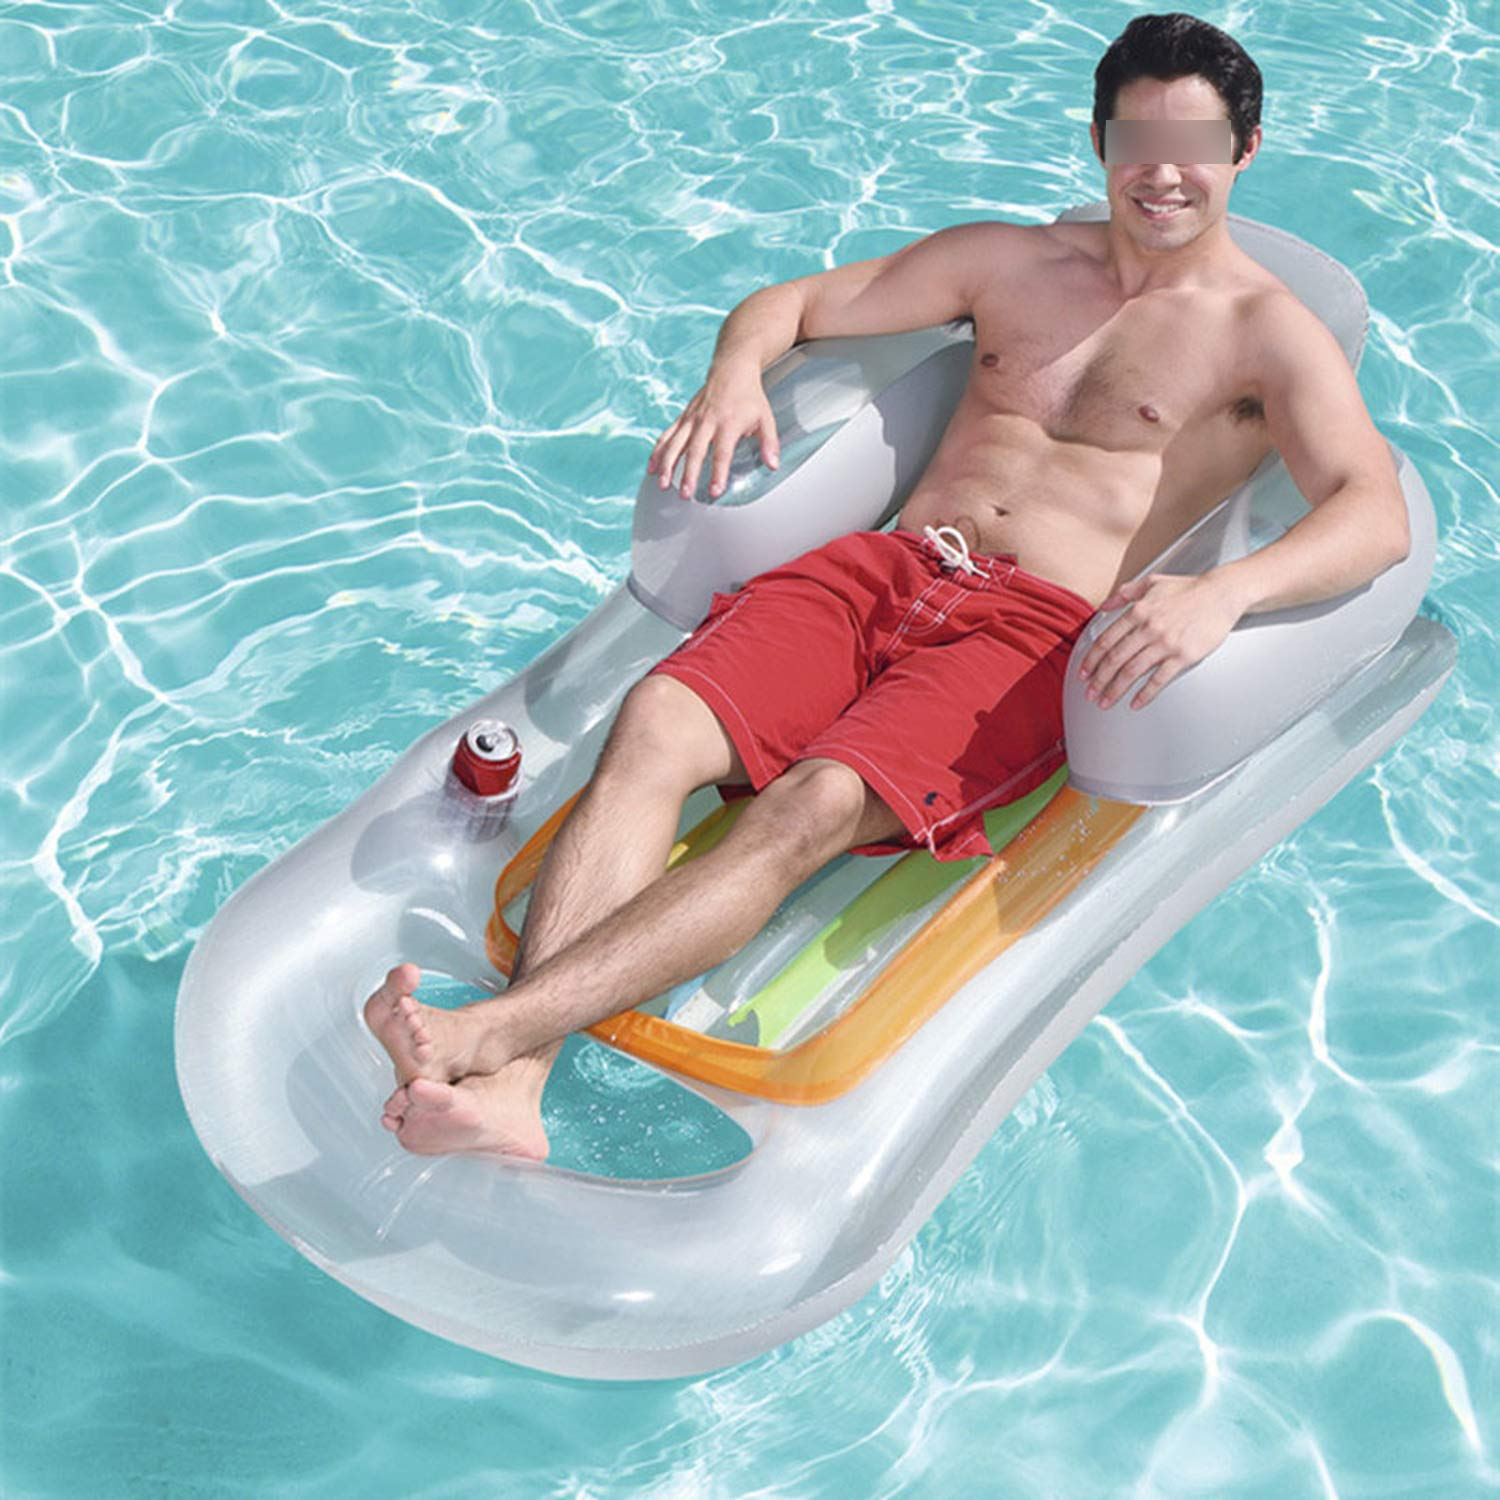 QIUHUAXIANG Inflatable Floating Row 157X89Cm Beach Swimming Air Mattress Pool Floats Floating Lounge Sleeping Bed for Water Sports Party,Random Color by QIUHUAXIANG (Image #3)